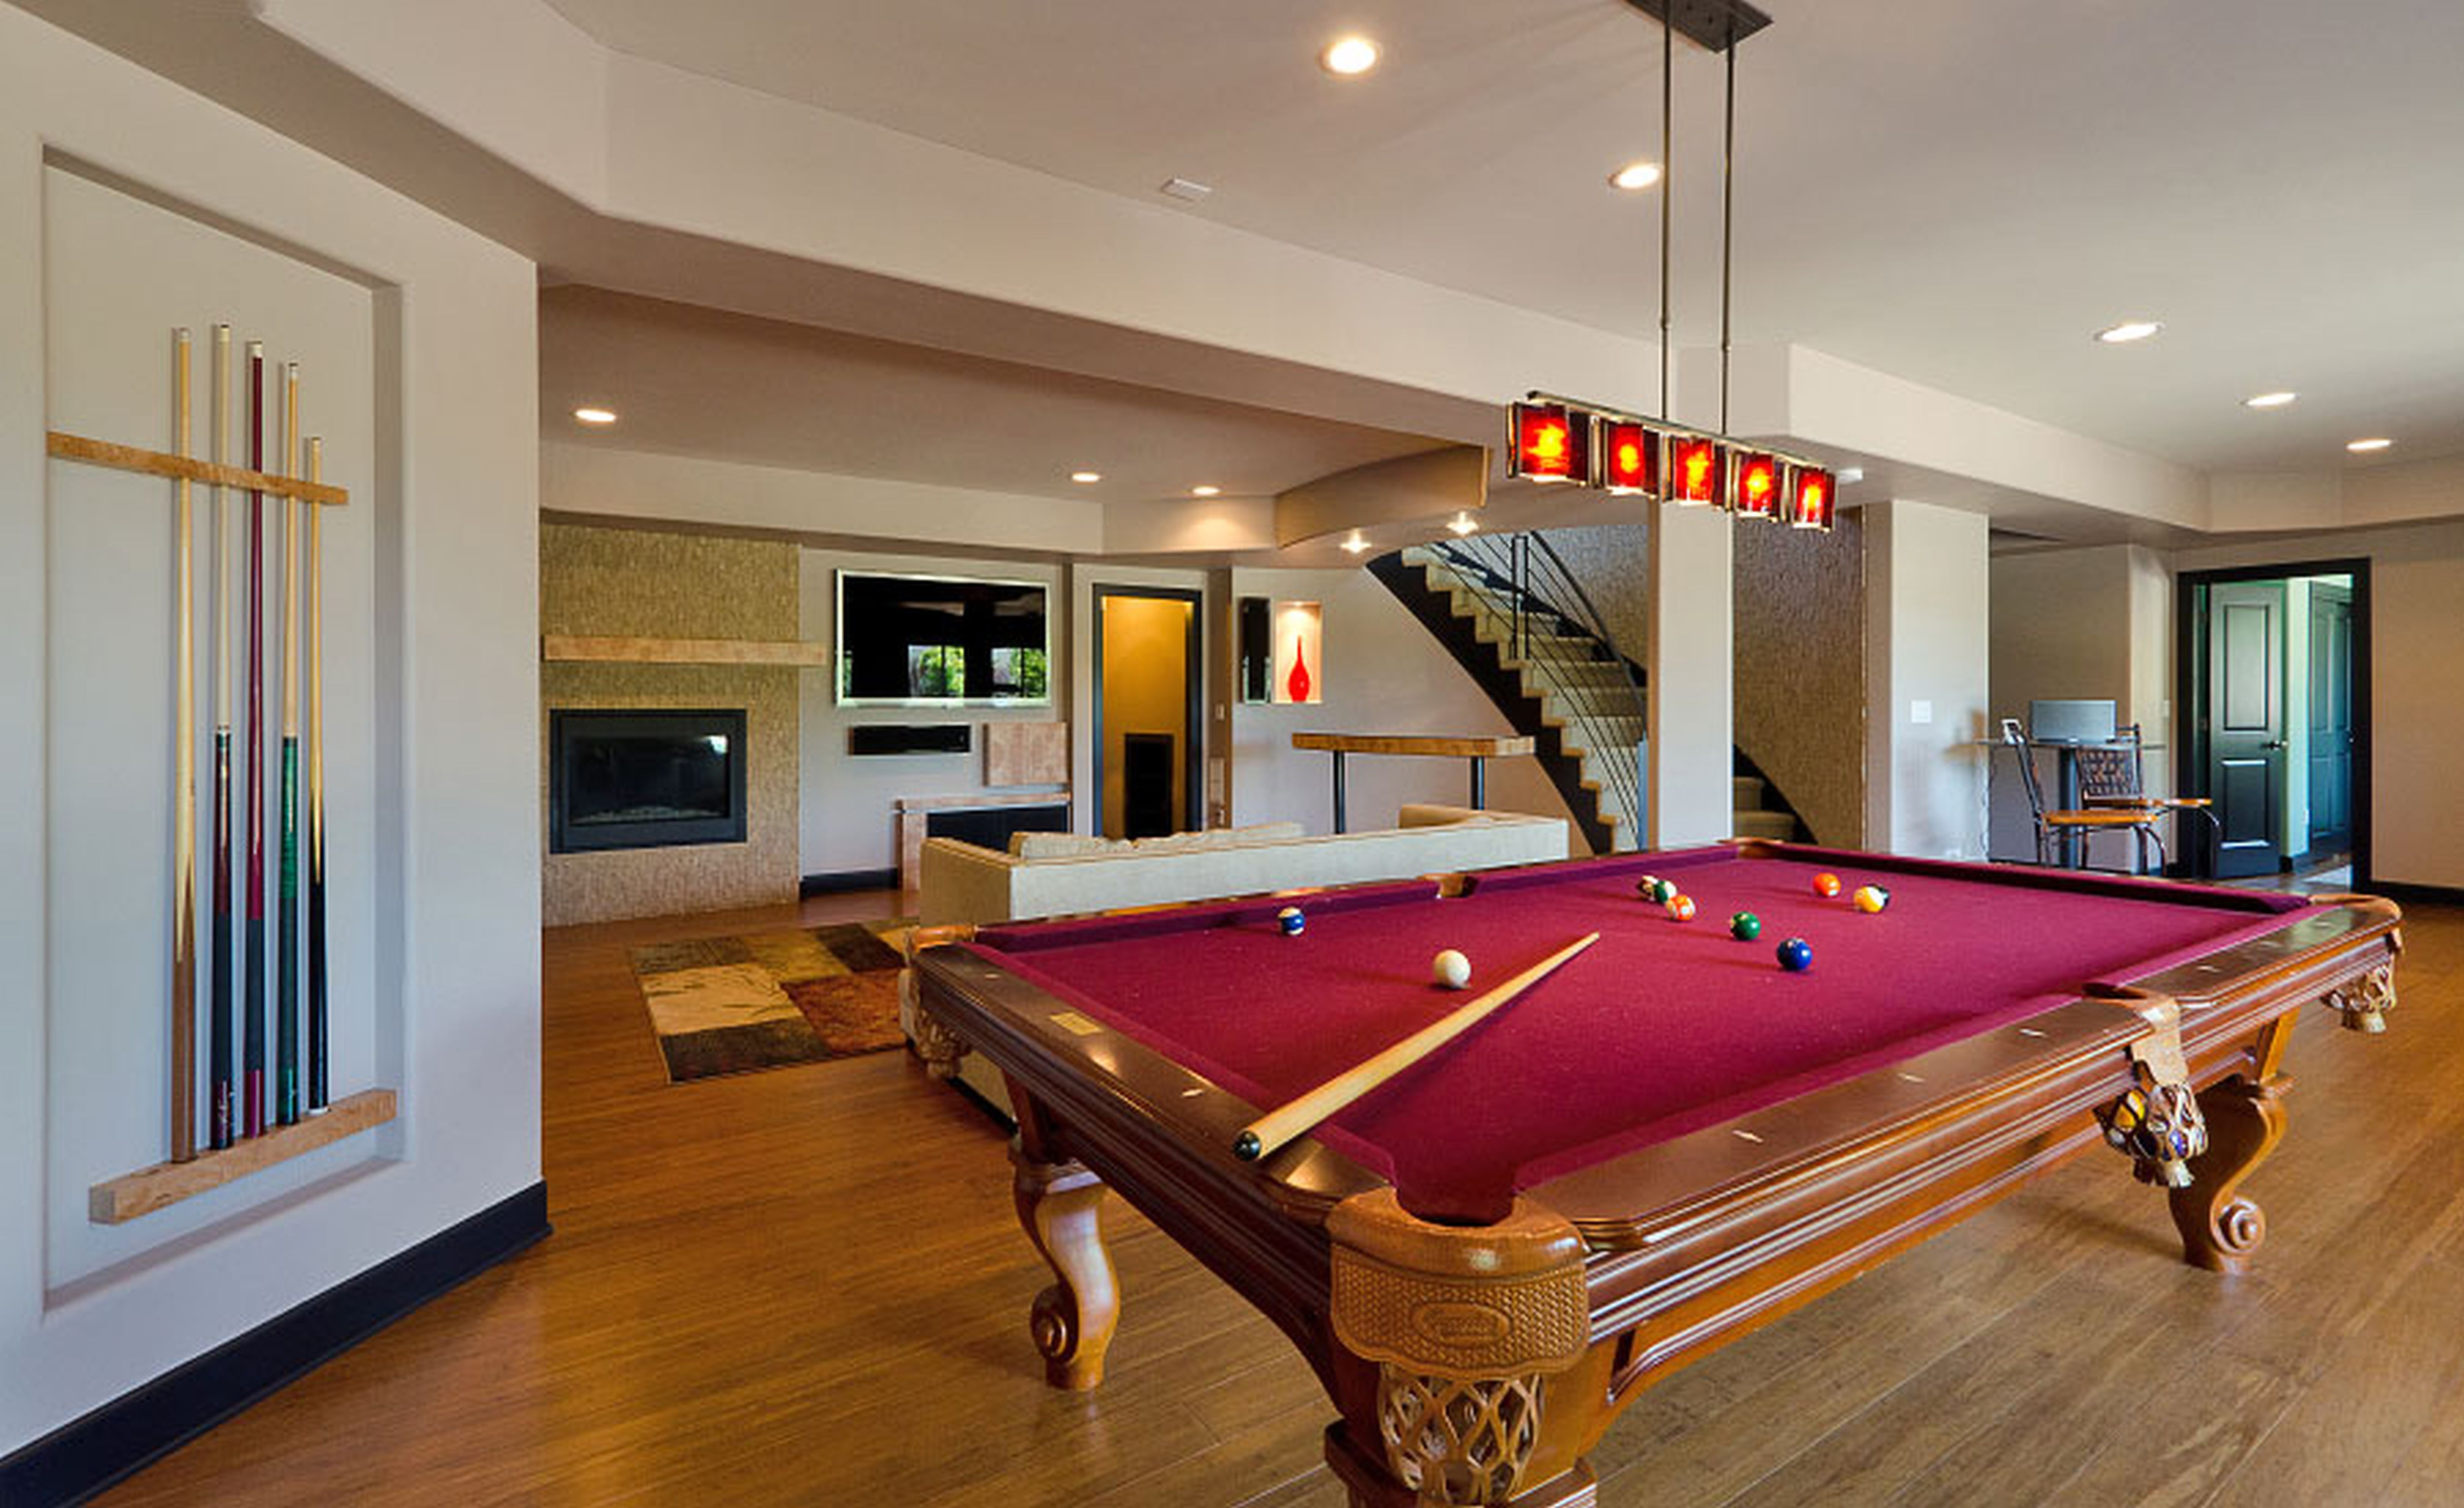 Alluring Finished Basement Idea with Pool Table